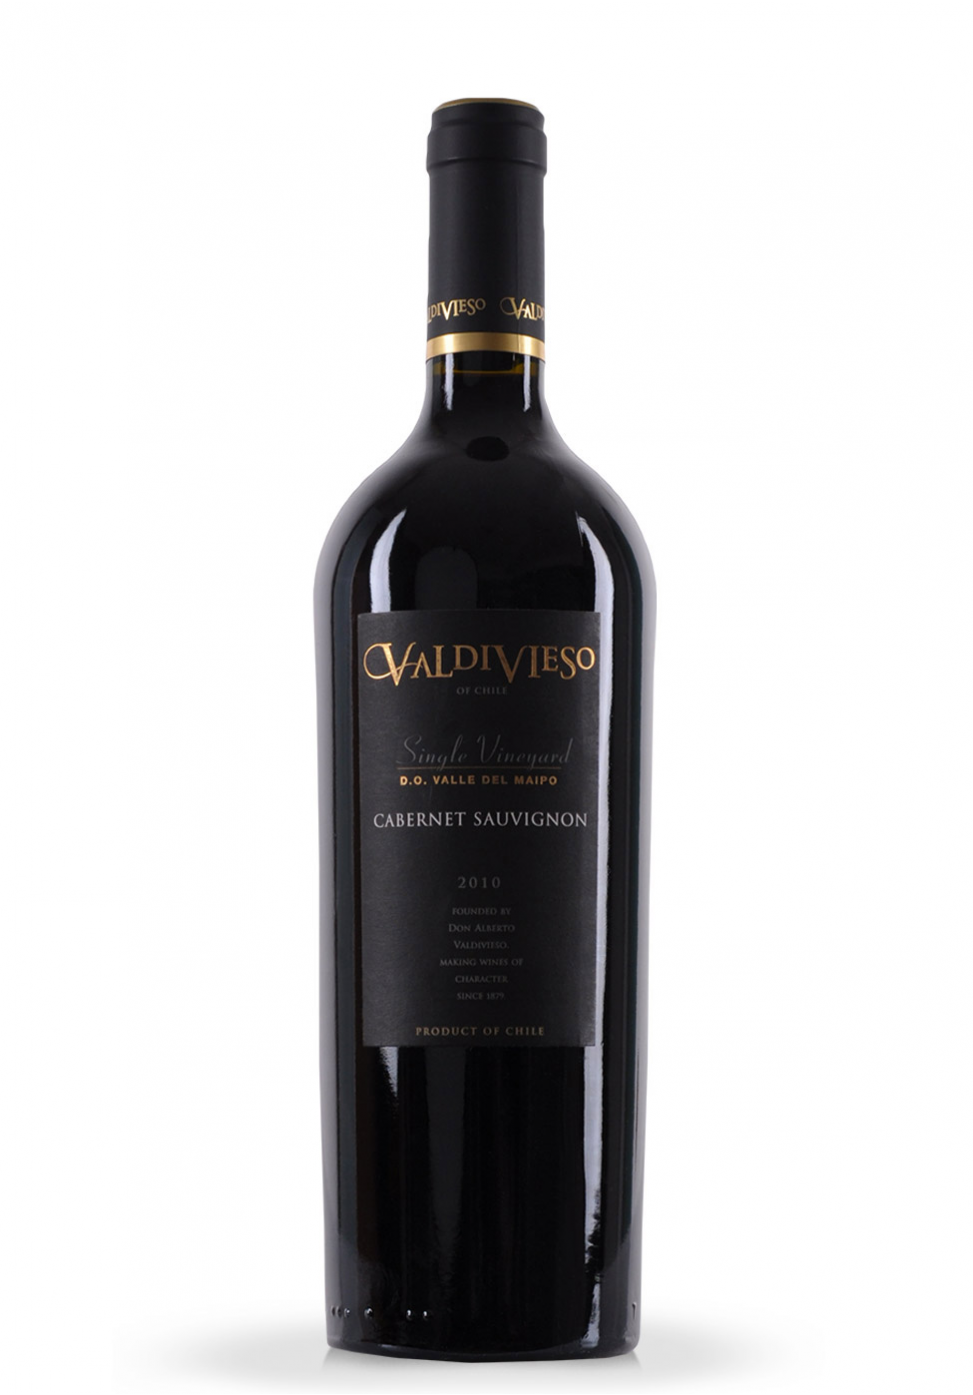 Vin Valdivieso, Cabernet Sauvignon Single Vineyard, 2010 (0.75L)